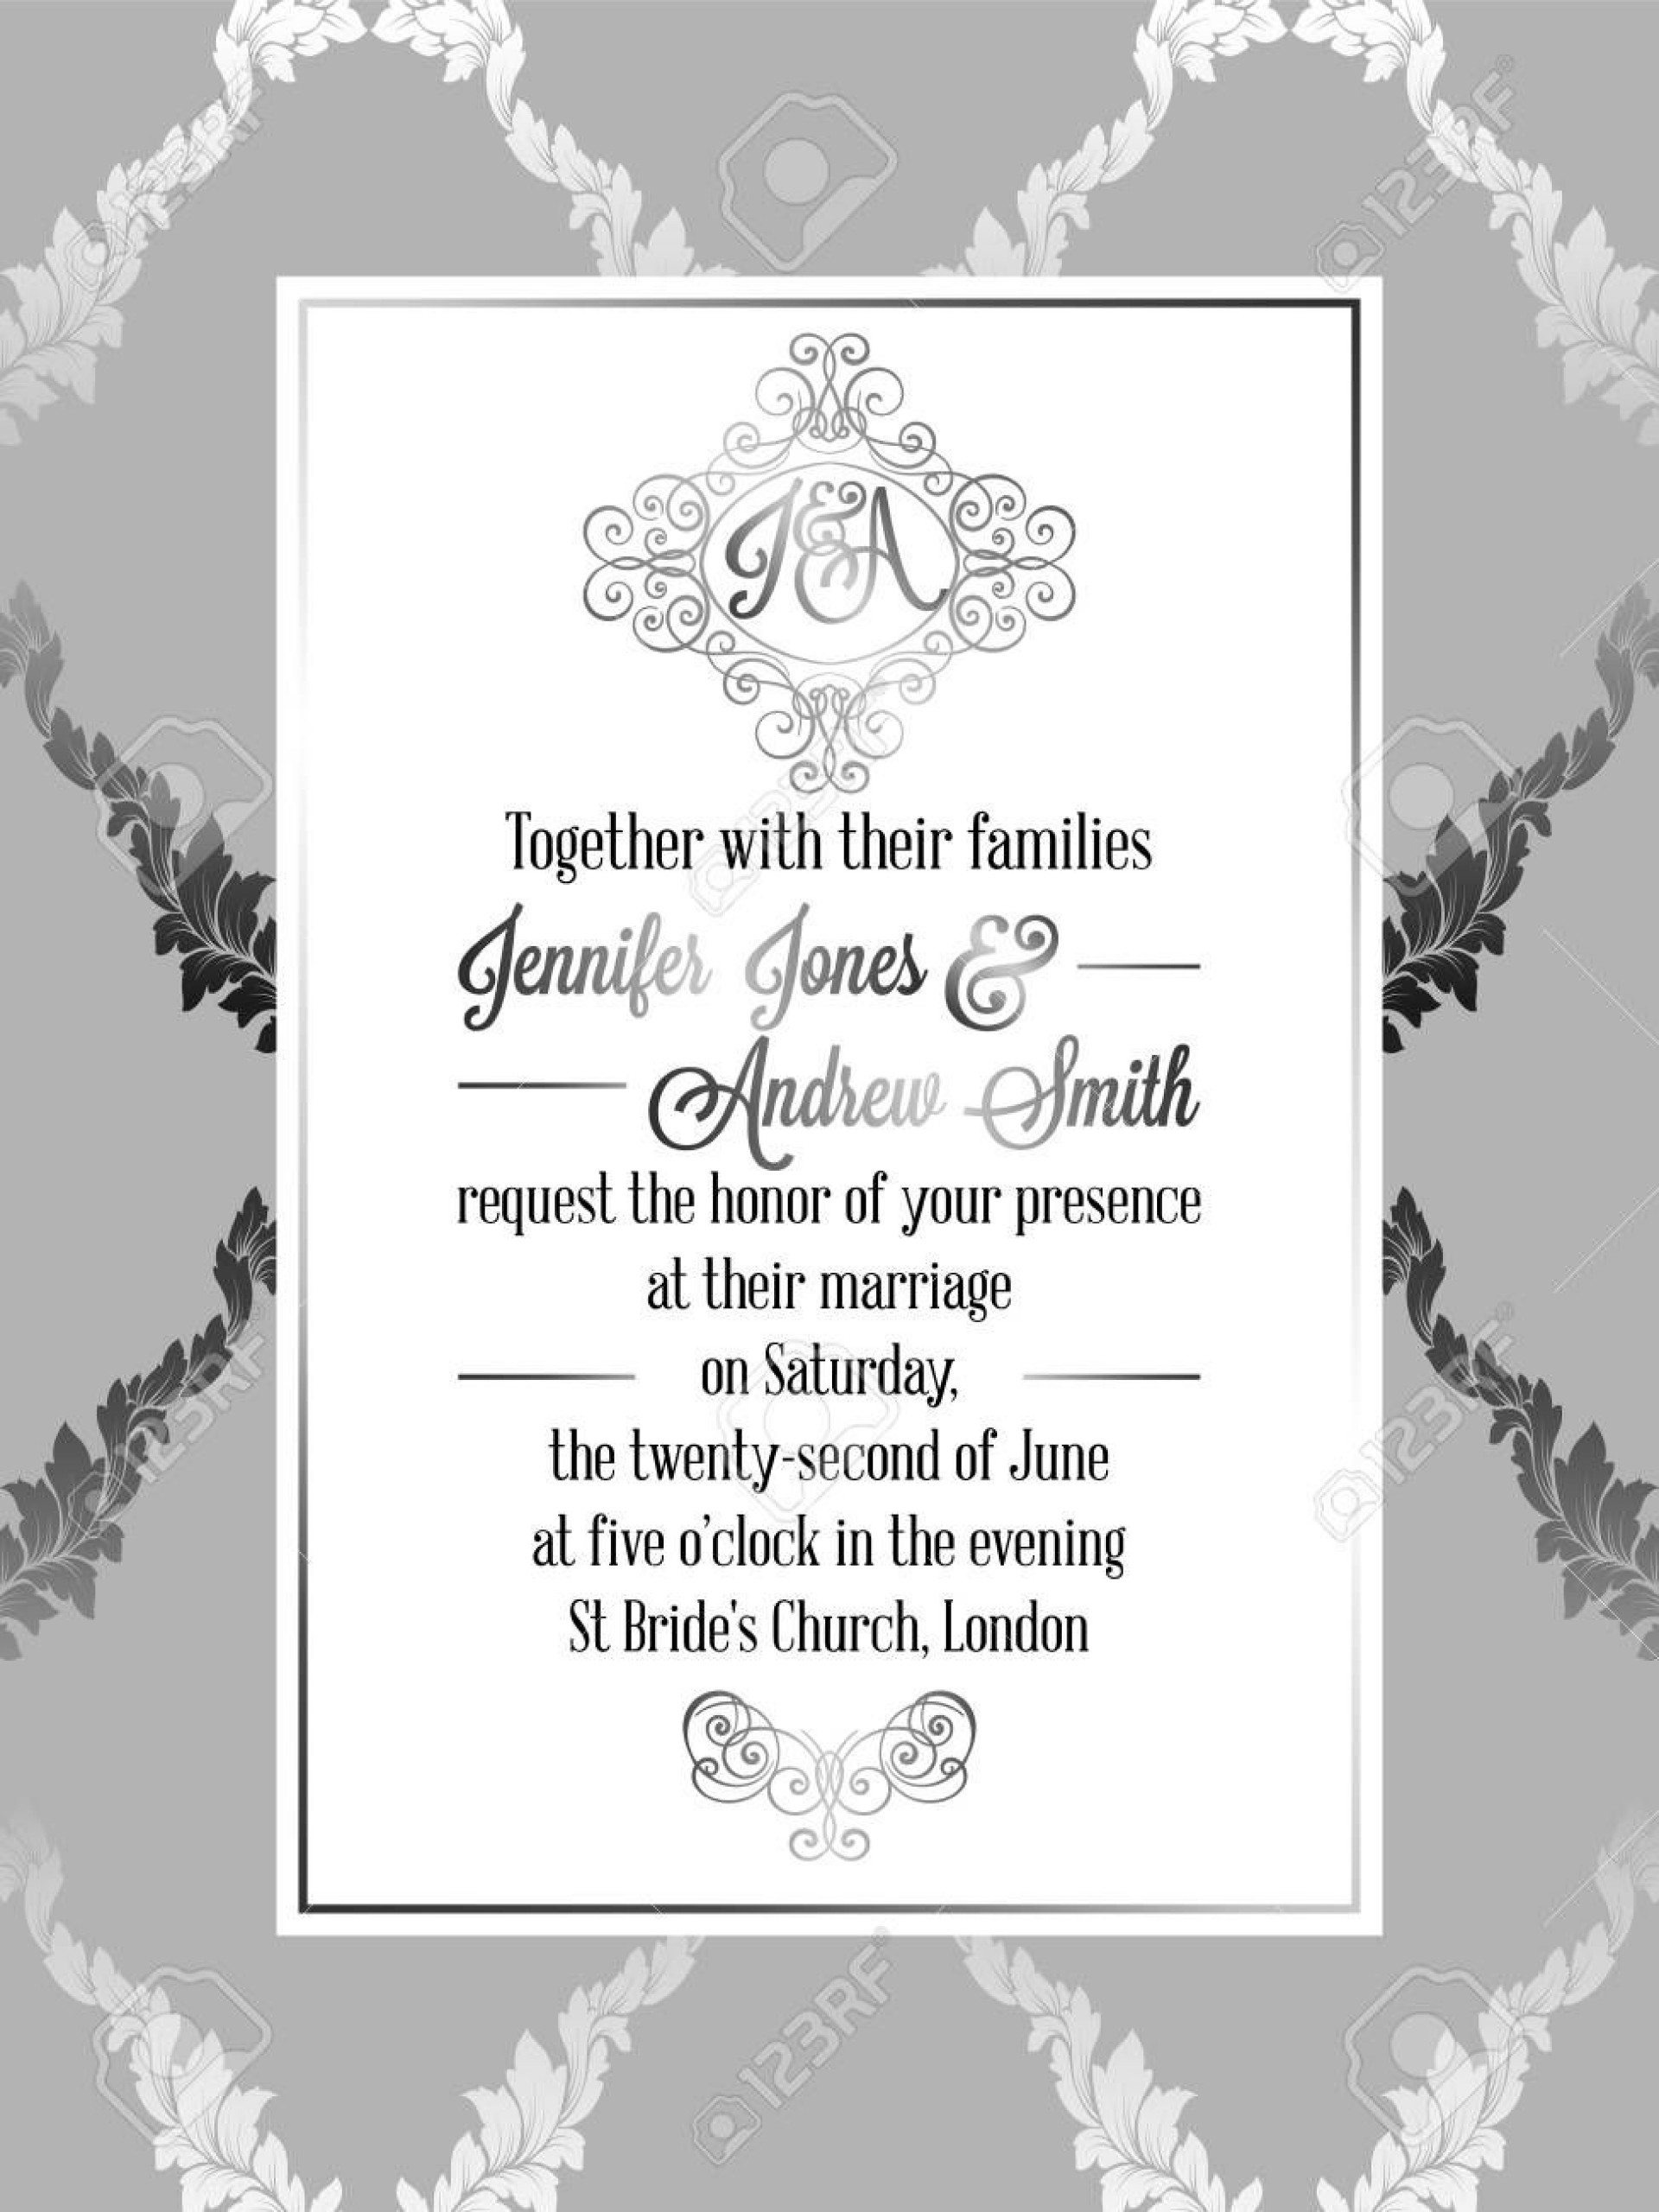 005 Wonderful Formal Wedding Invitation Template Concept  Templates Email Format Wording Free1920